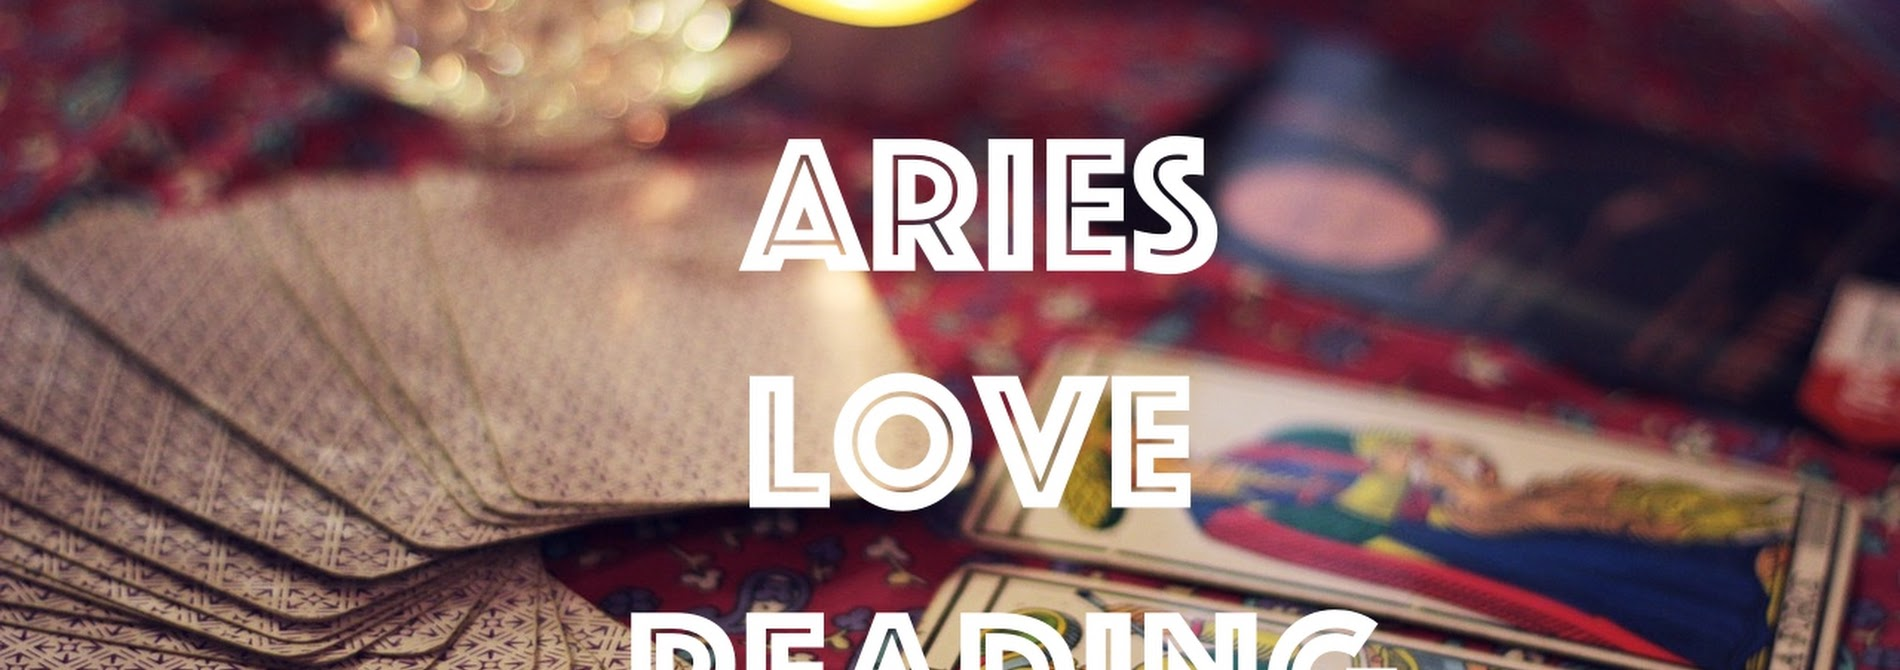 Aries ♈️ - December 2017 Love Reading ⎪Happiness can be achieved